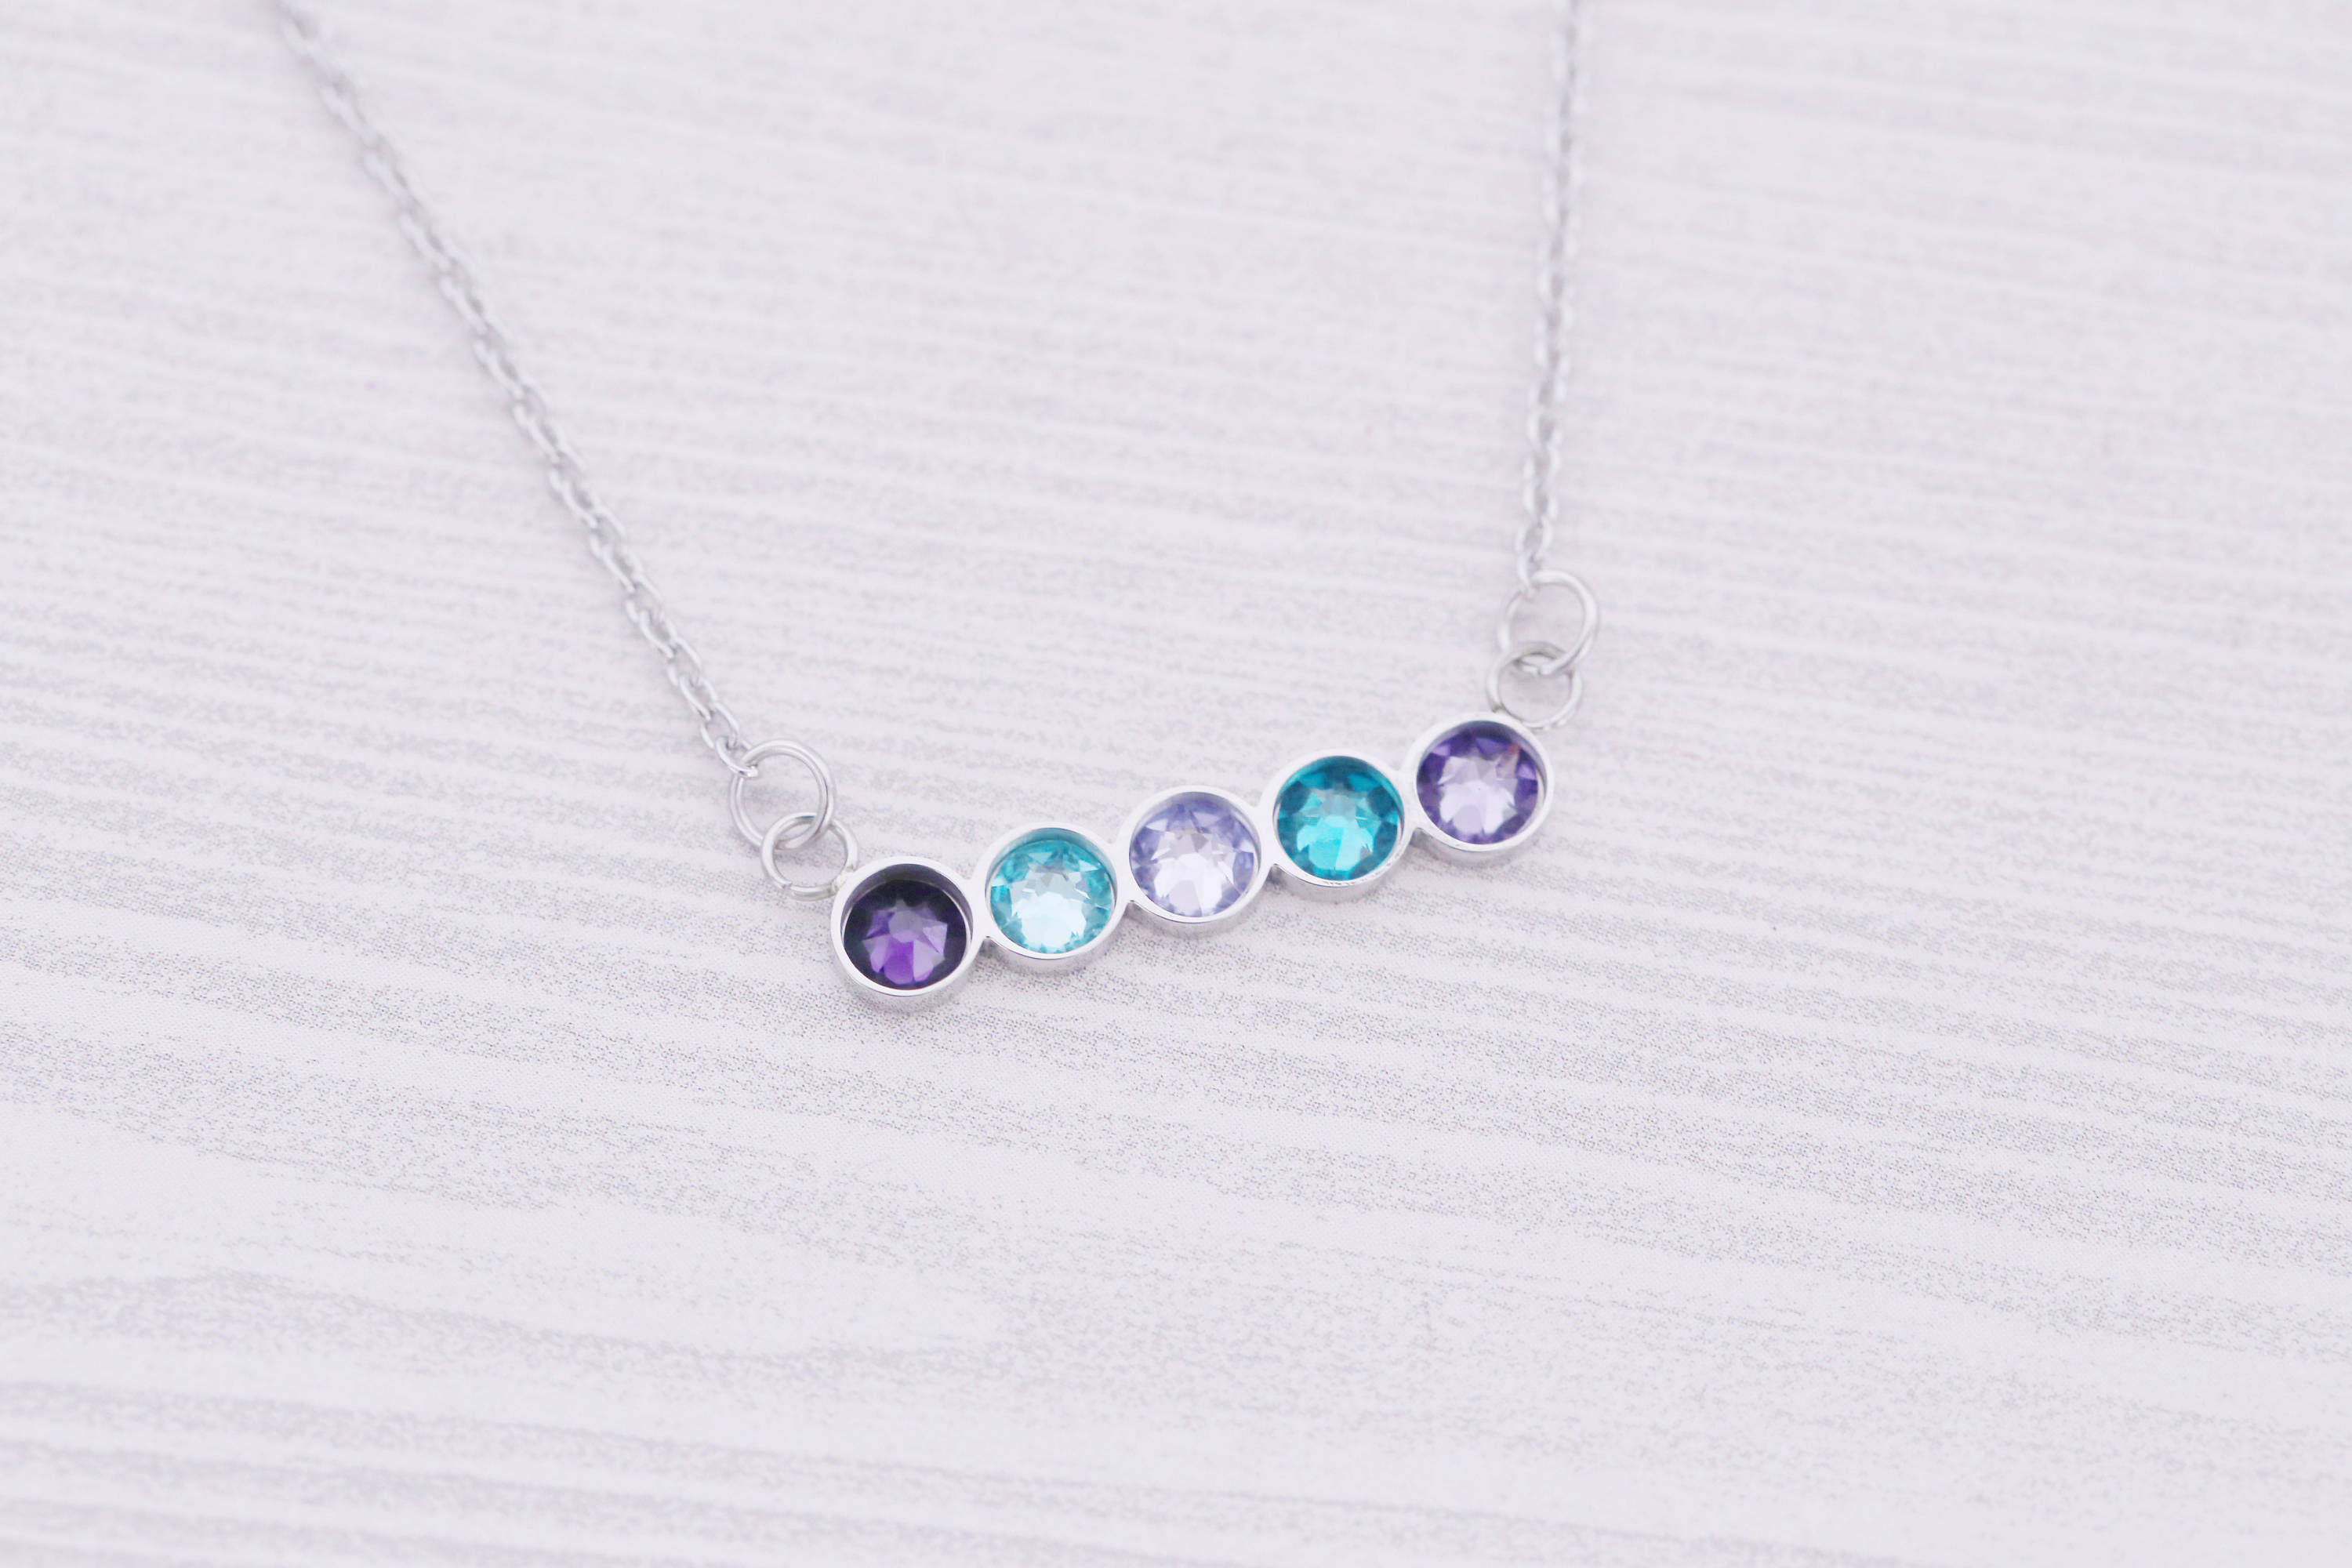 5 Birthstone Bar Necklace - New Mom Gift - New Baby Gift - Kids Name Jewelry - Engraved Jewelry - Bar Pendant - Bar Necklace